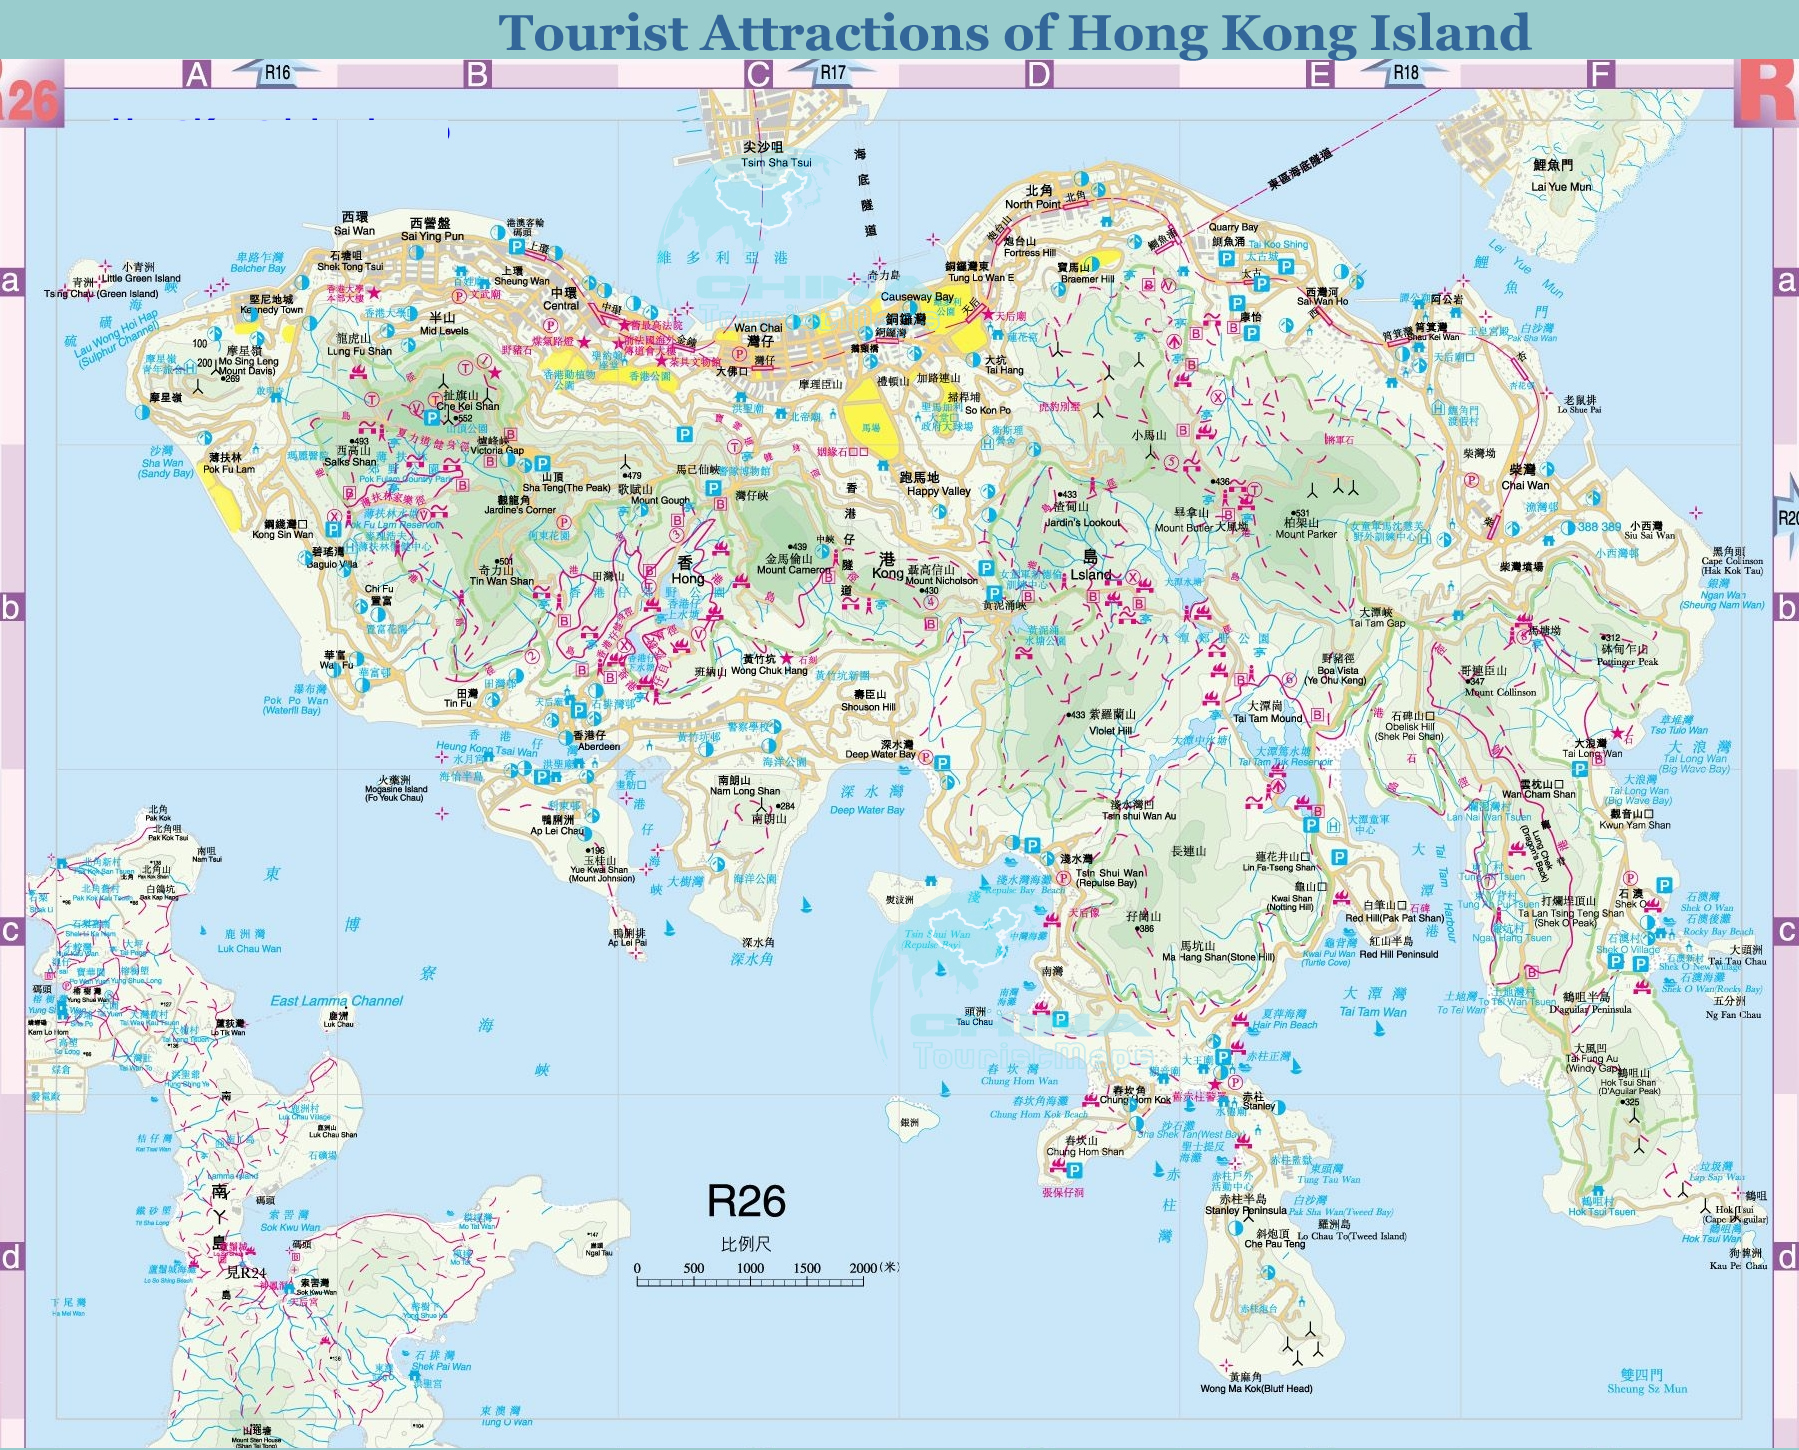 Complete Hong Kong Travel Map for Tourists Guidance – Hong Kong Tourist Attractions Map